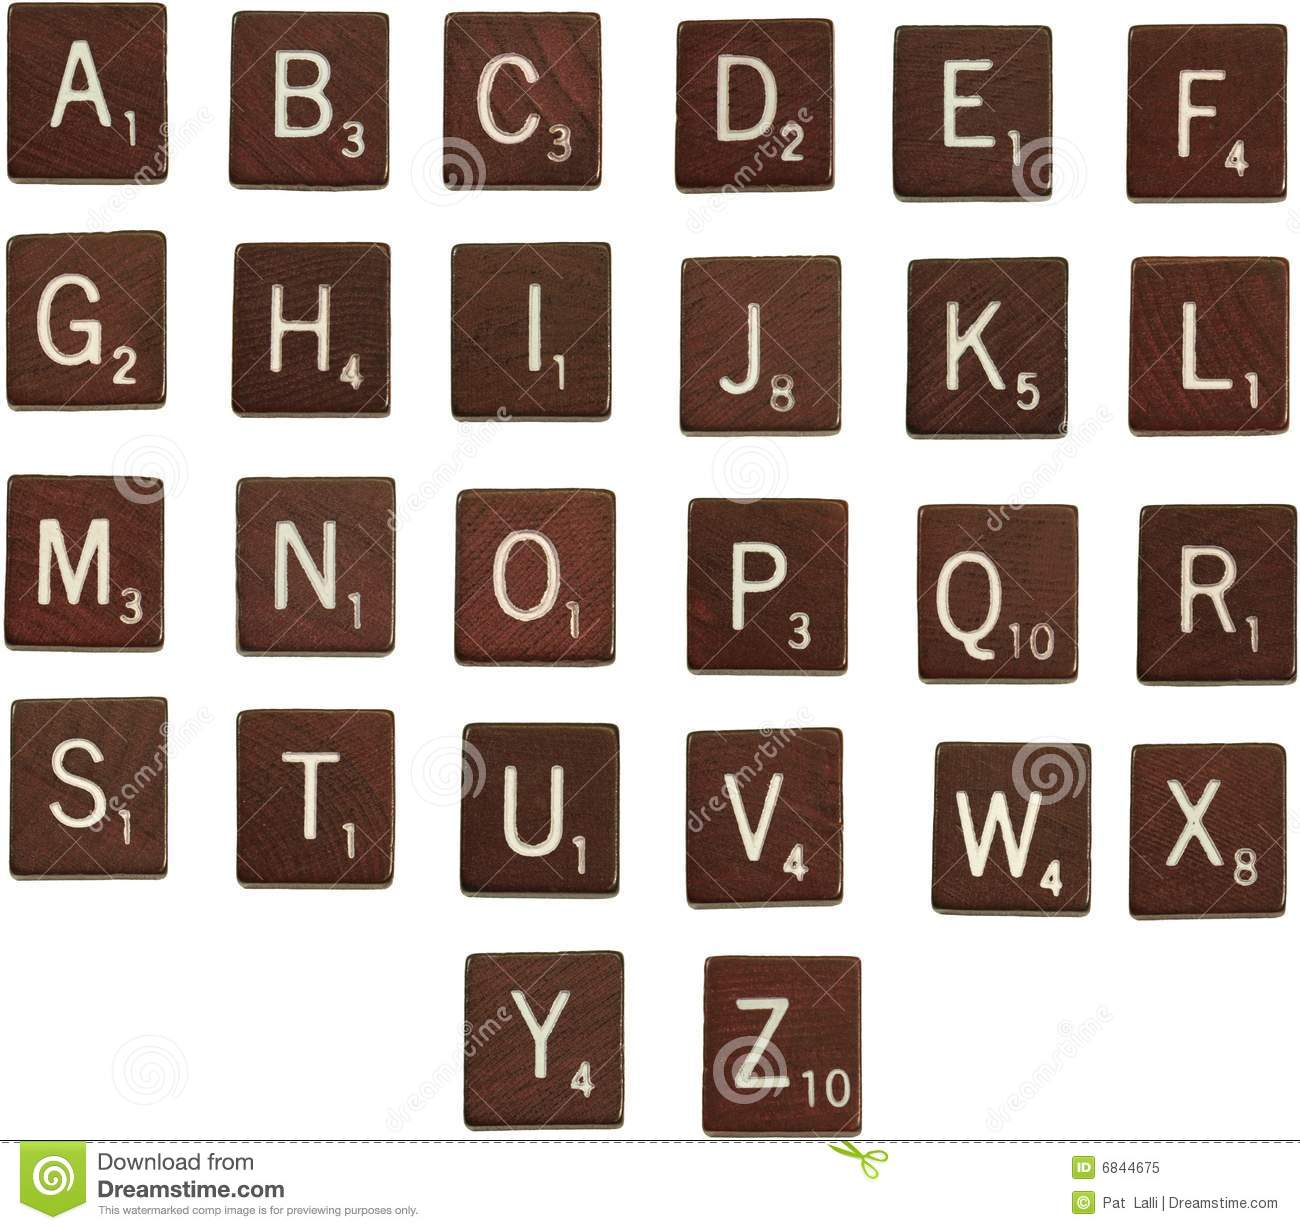 Scrabble alphabet | 1. white, 2. Scrabble White Letter on Re… | Flickr